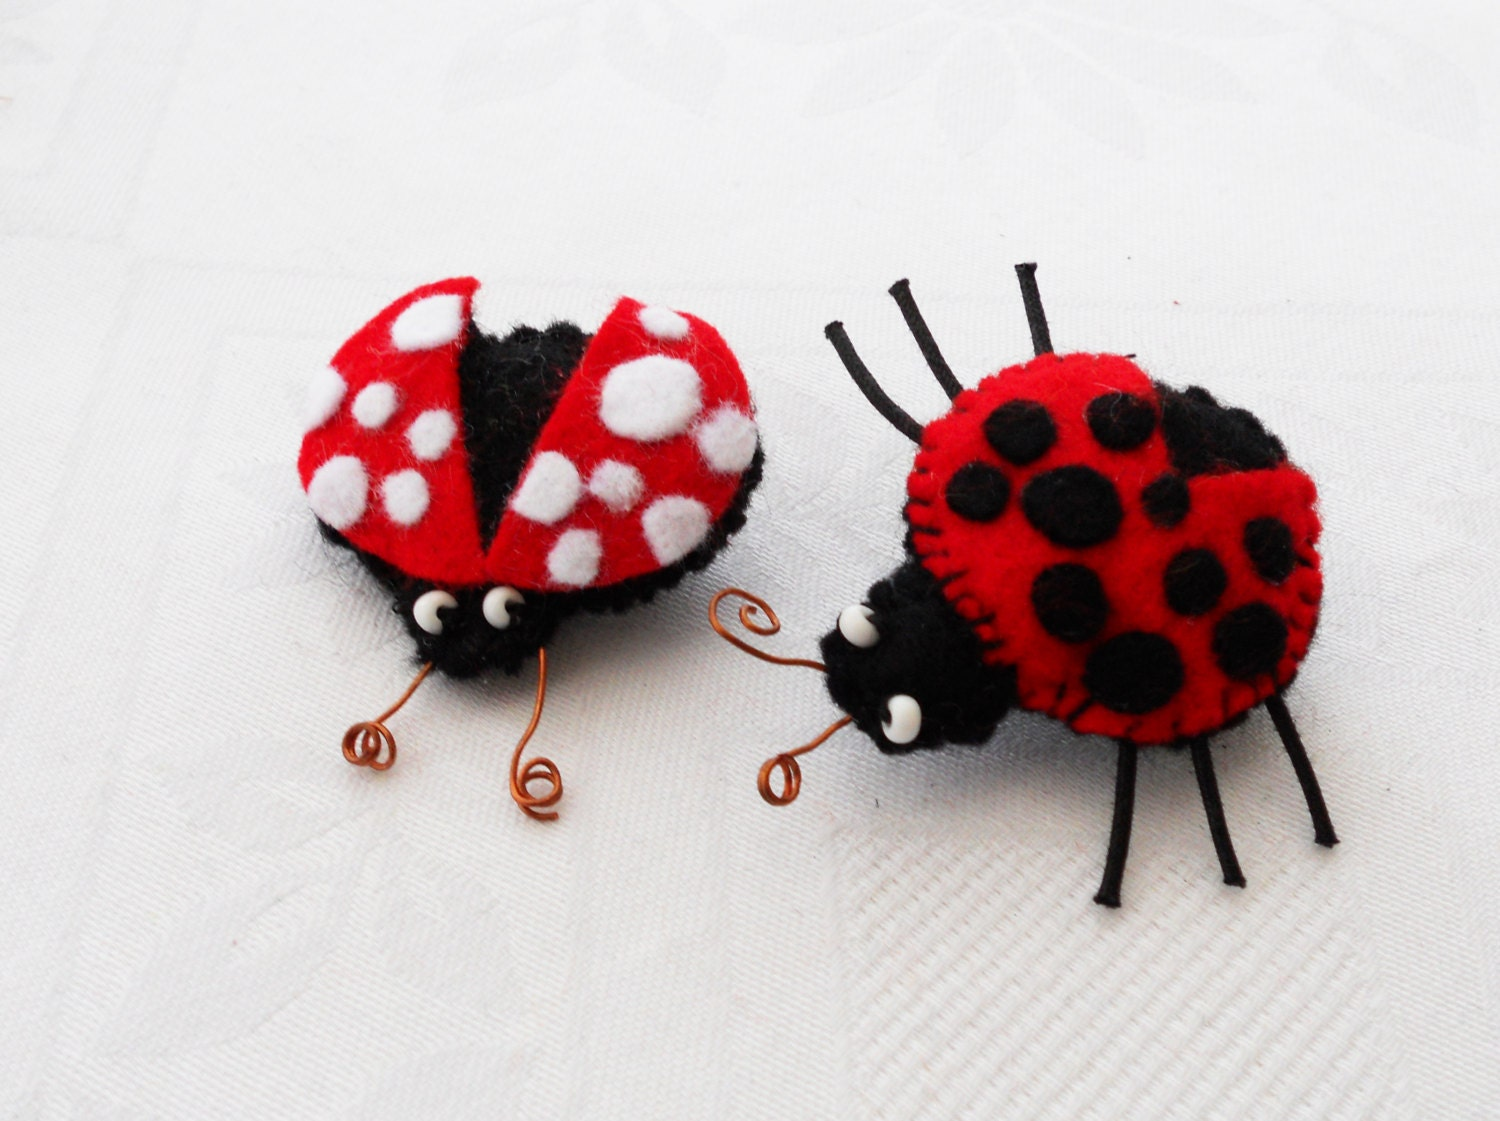 Ladybugs Ladybirds Brooches FIVE Brooches Easter Spring Pins Felted Brooches Kids Jewelry Red Black White Spring Made To Order - oddandcurious